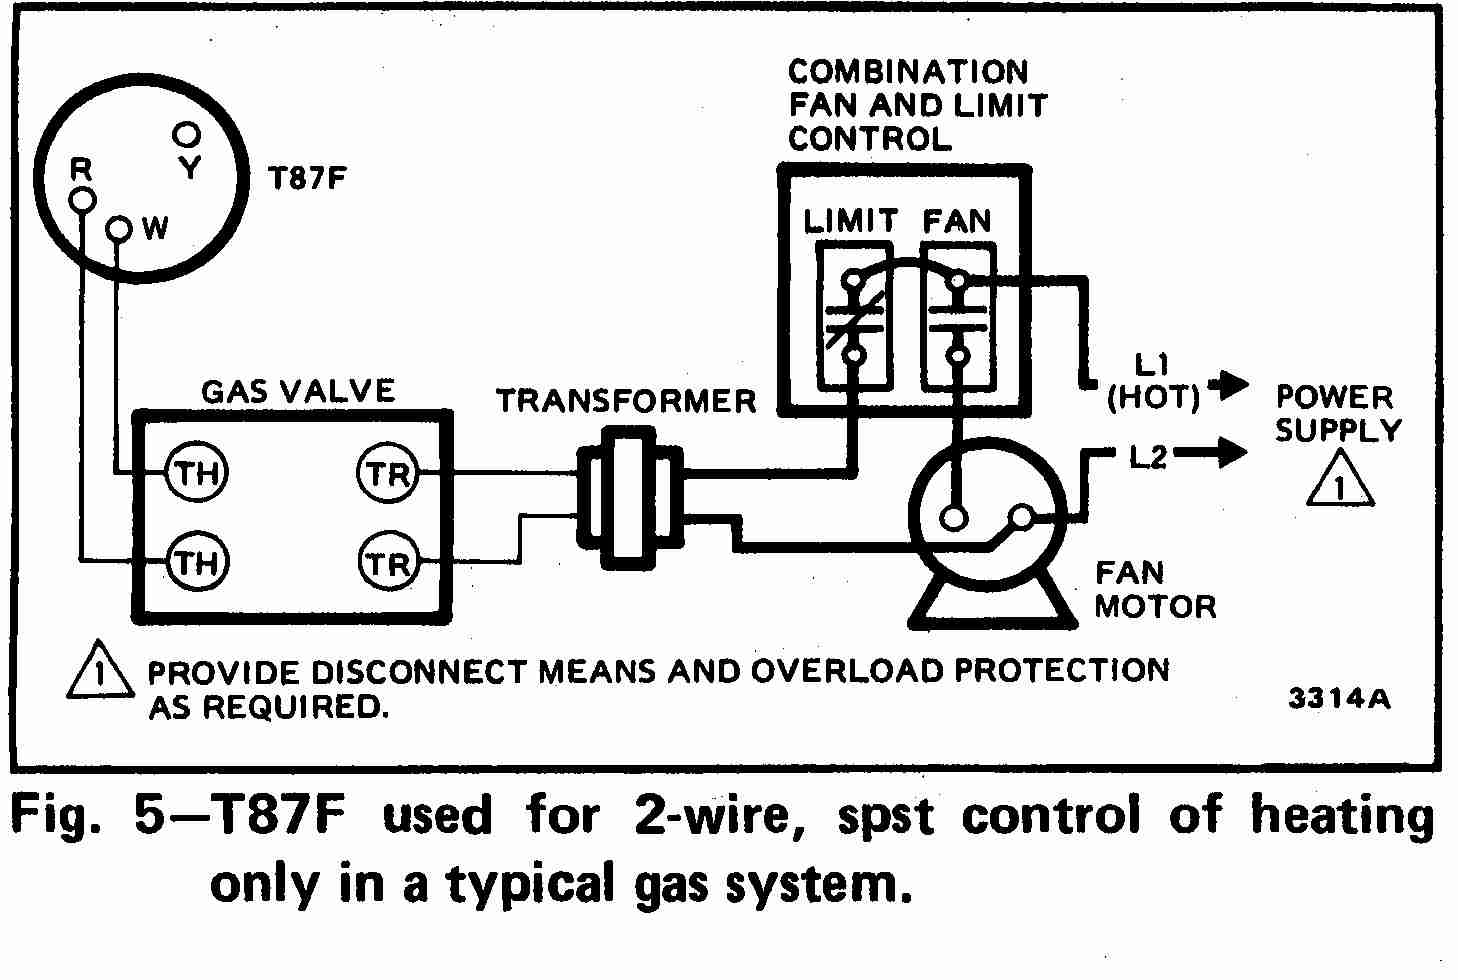 TT_T87F_0002_2Wg_DJF guide to wiring connections for room thermostats,6 Wire Thermostat Wiring Code